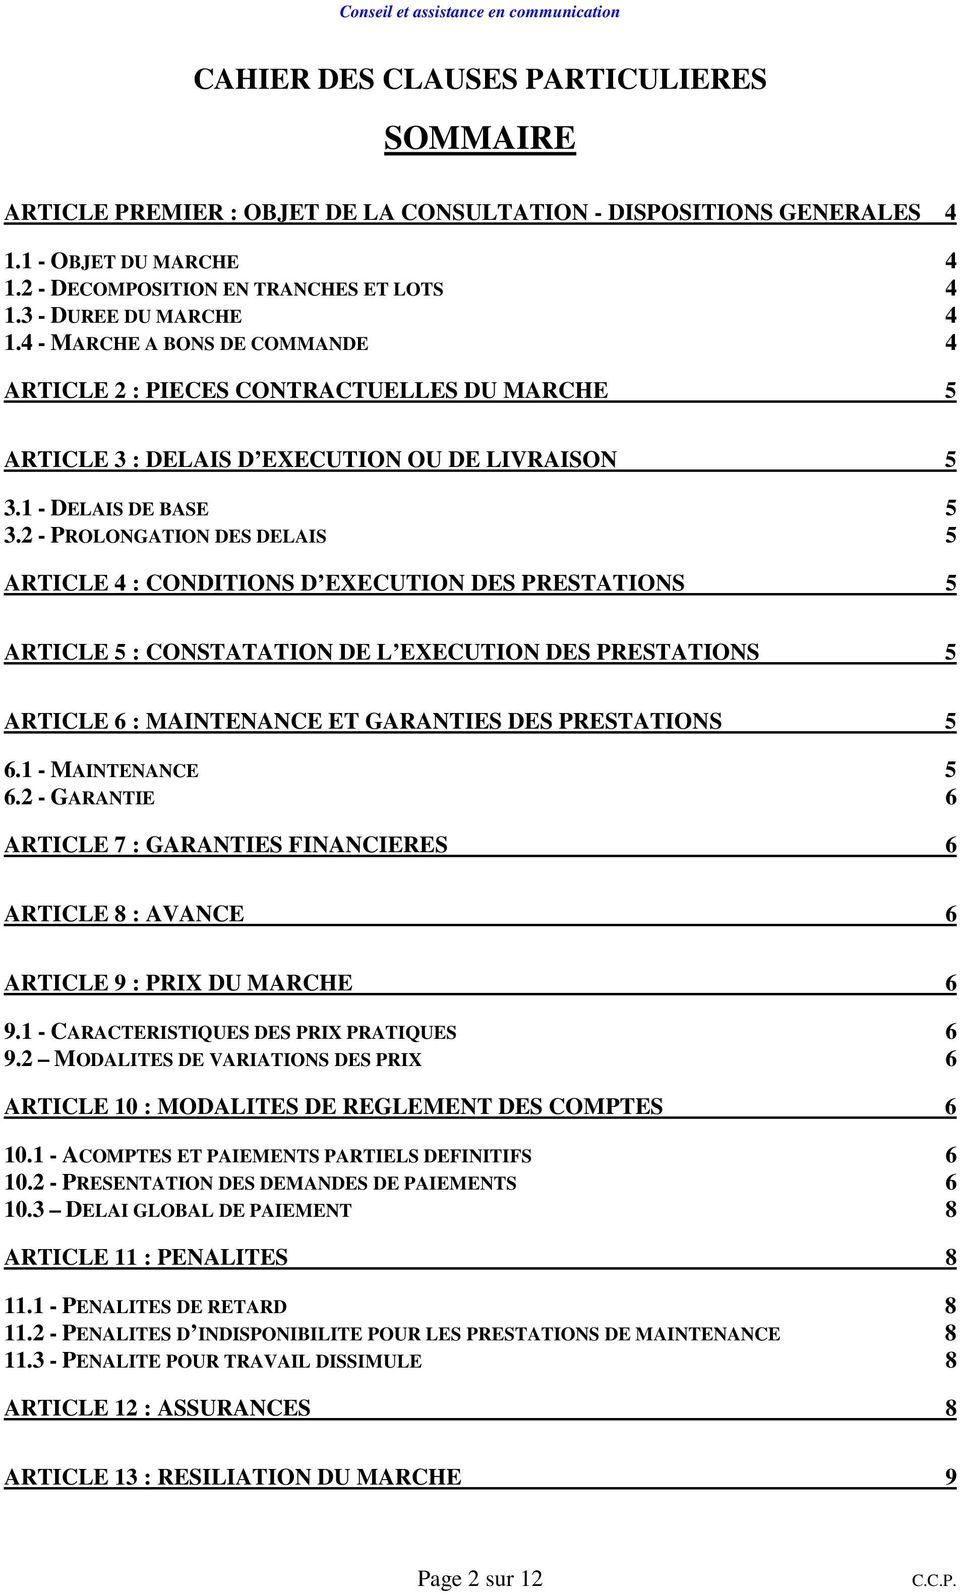 2 - PROLONGATION DES DELAIS 5 ARTICLE 4 : CONDITIONS D EXECUTION DES PRESTATIONS 5 ARTICLE 5 : CONSTATATION DE L EXECUTION DES PRESTATIONS 5 ARTICLE 6 : MAINTENANCE ET GARANTIES DES PRESTATIONS 5 6.